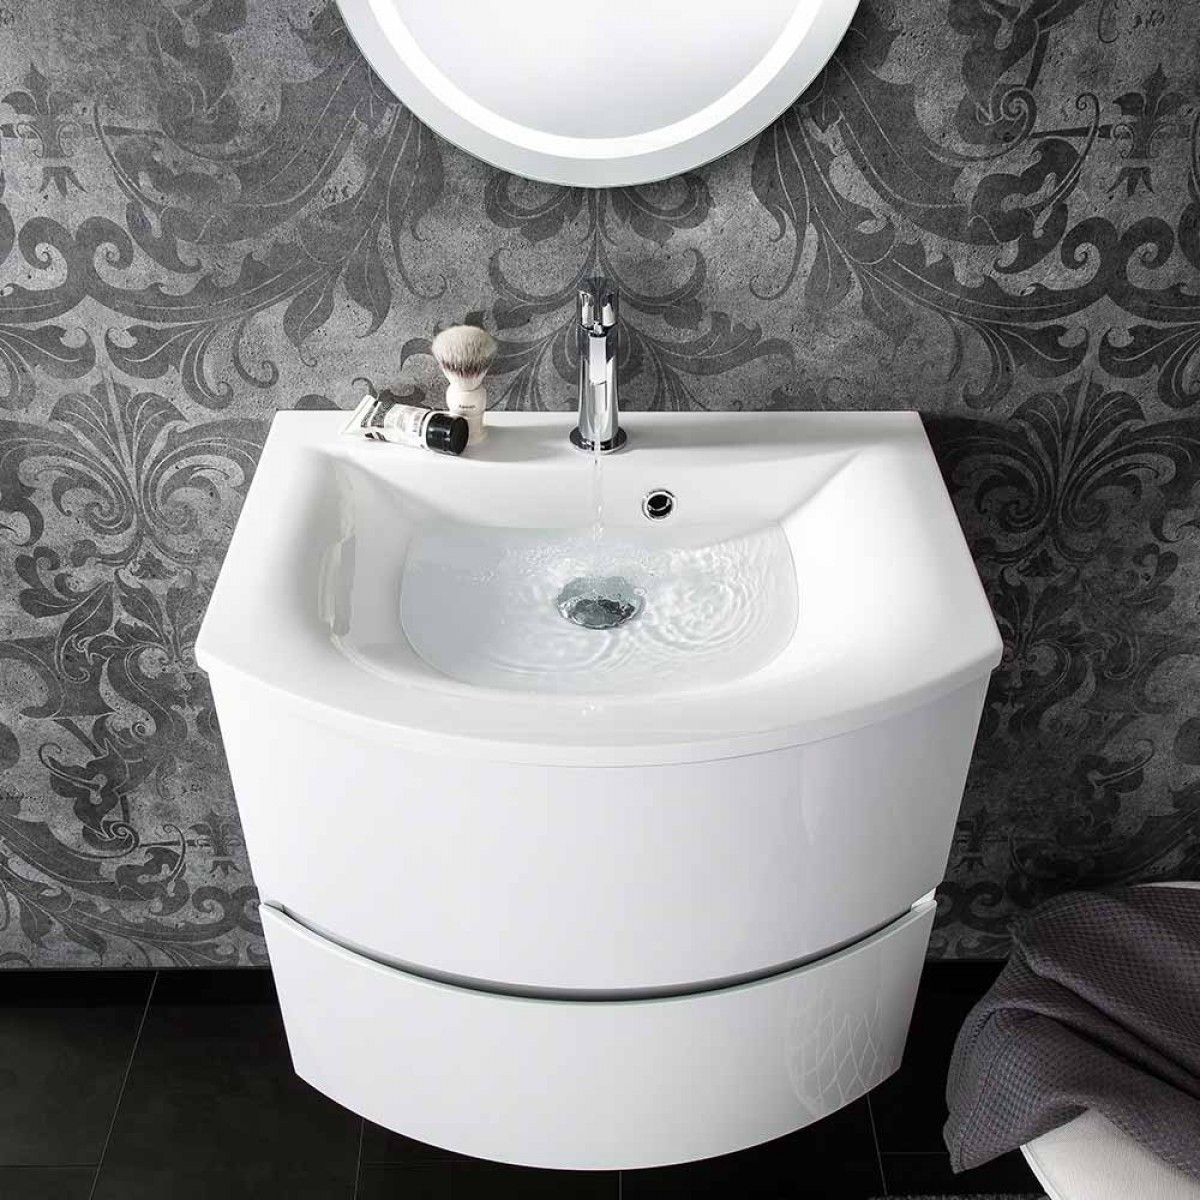 Crosswater Svelte 60 Wall Mounted Vanity Unit with Basin